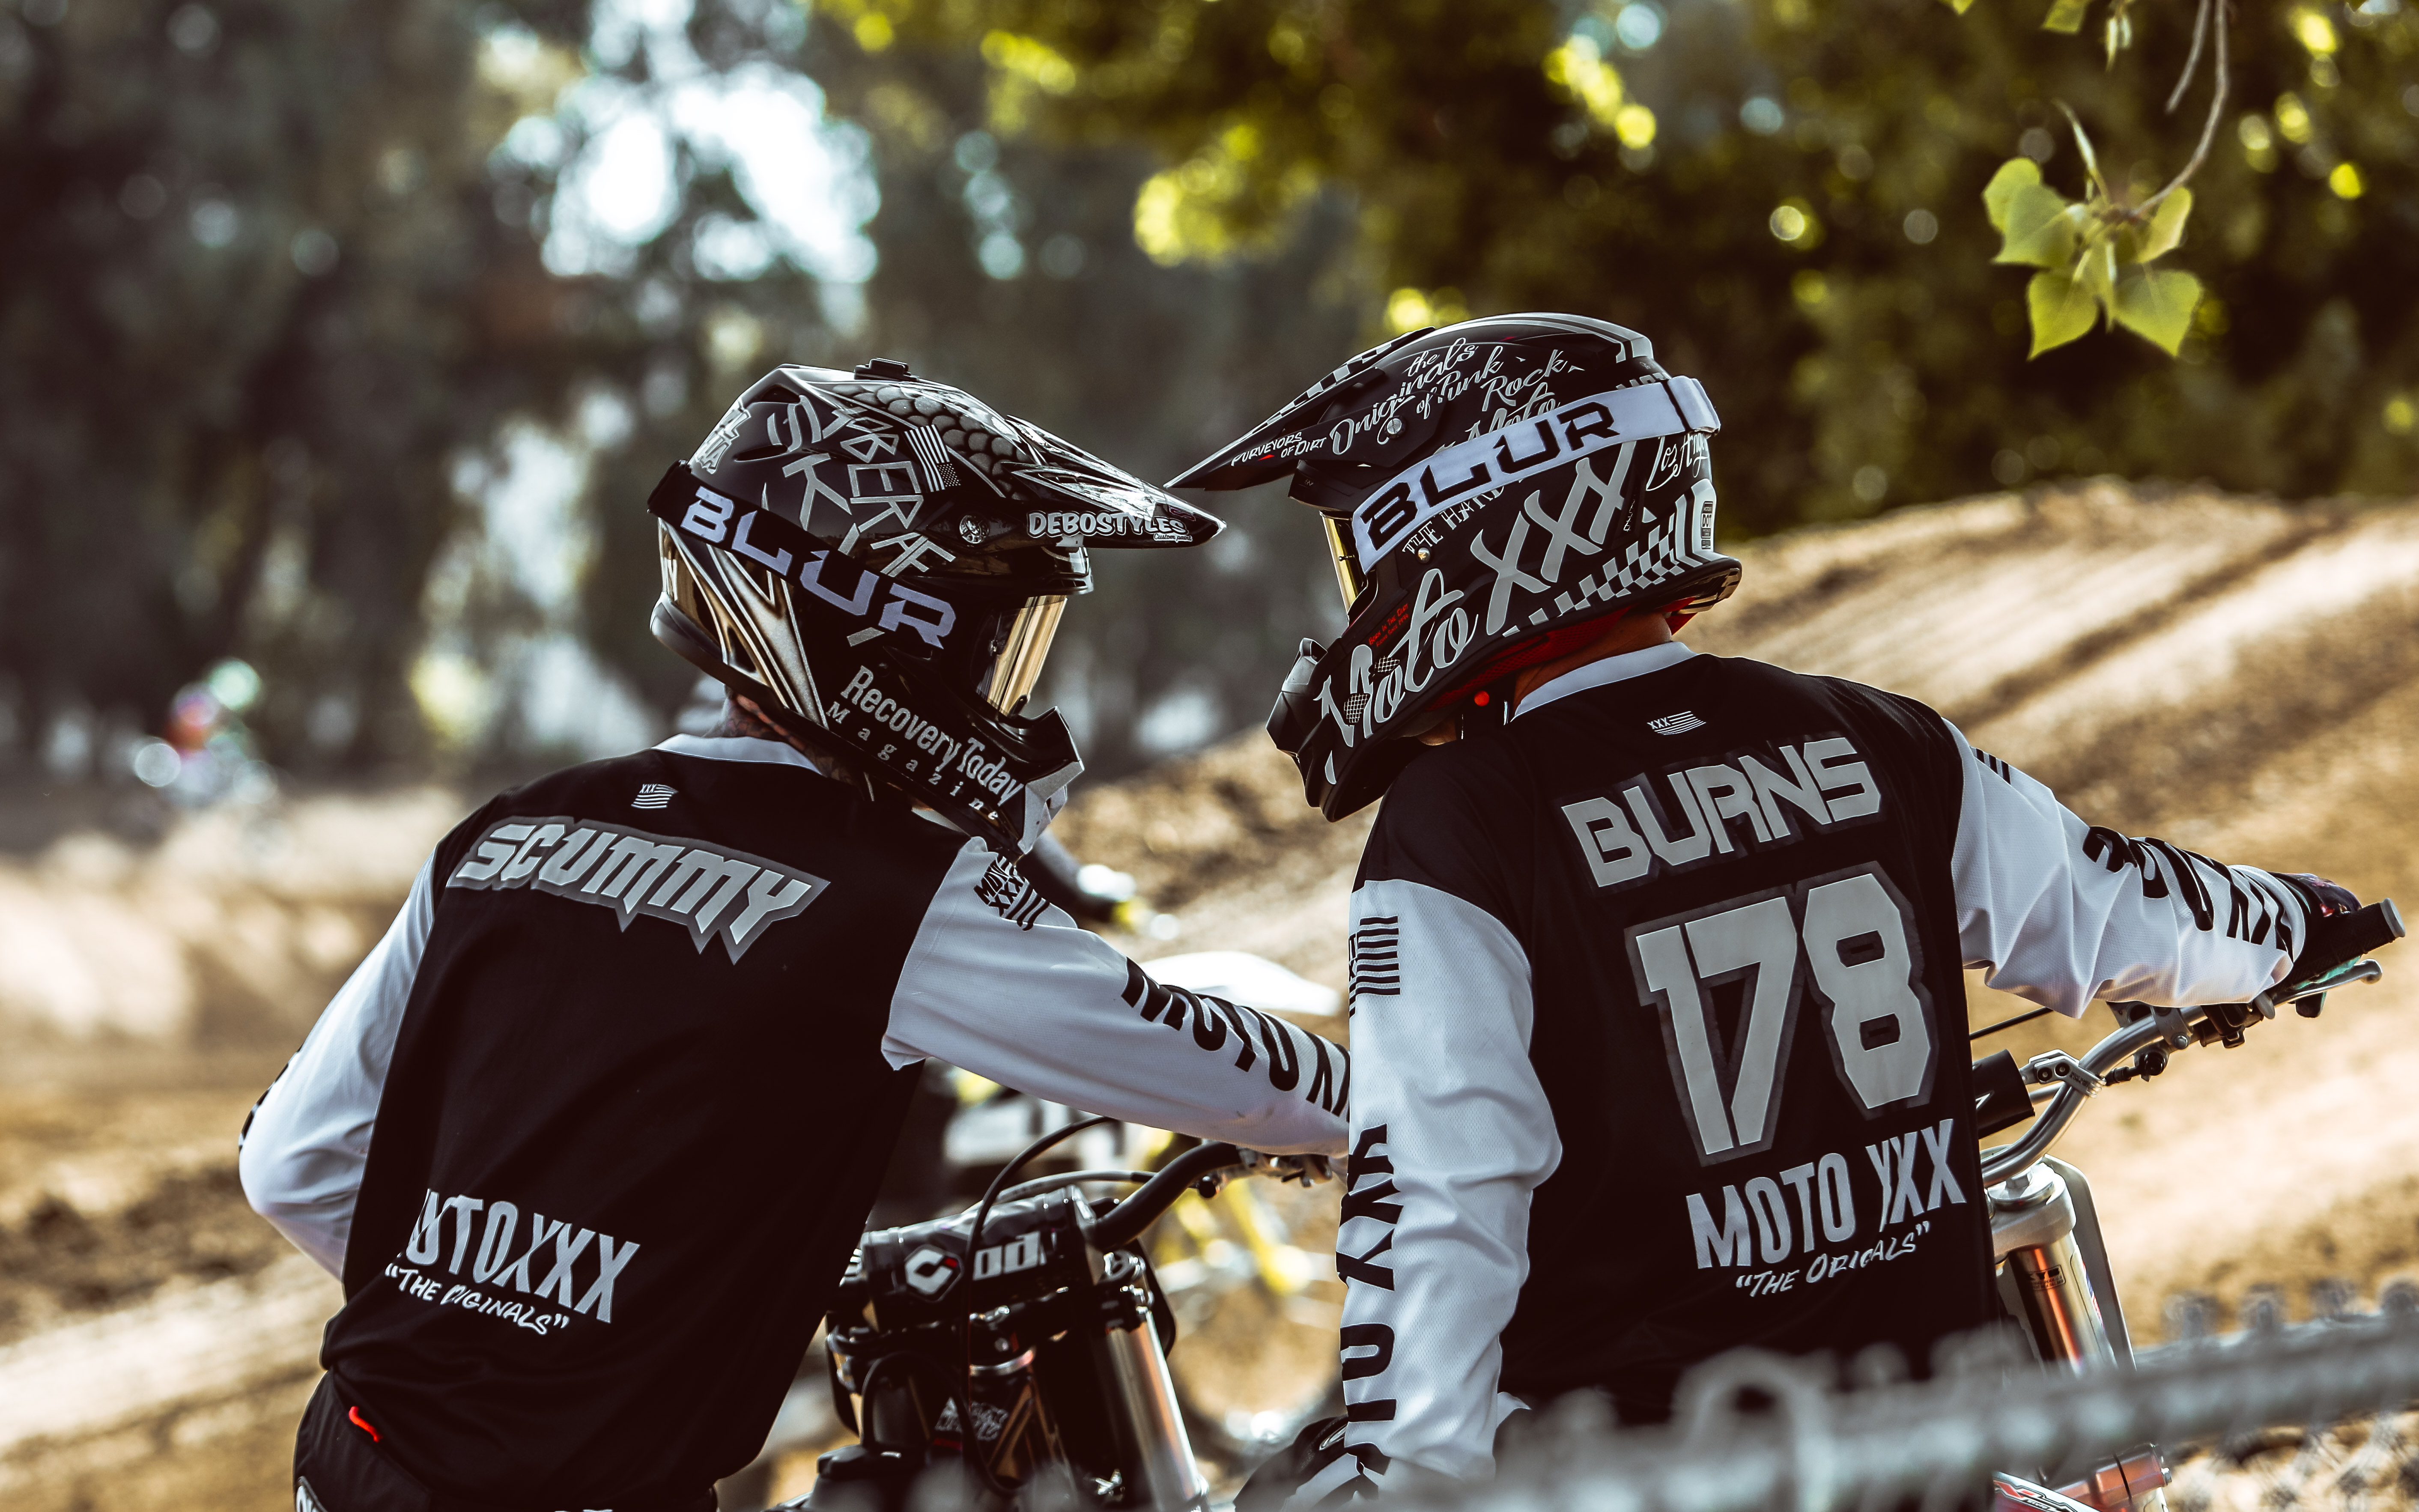 History in Supercross: Interview with Jordan Burns of Moto XXX, Part 2